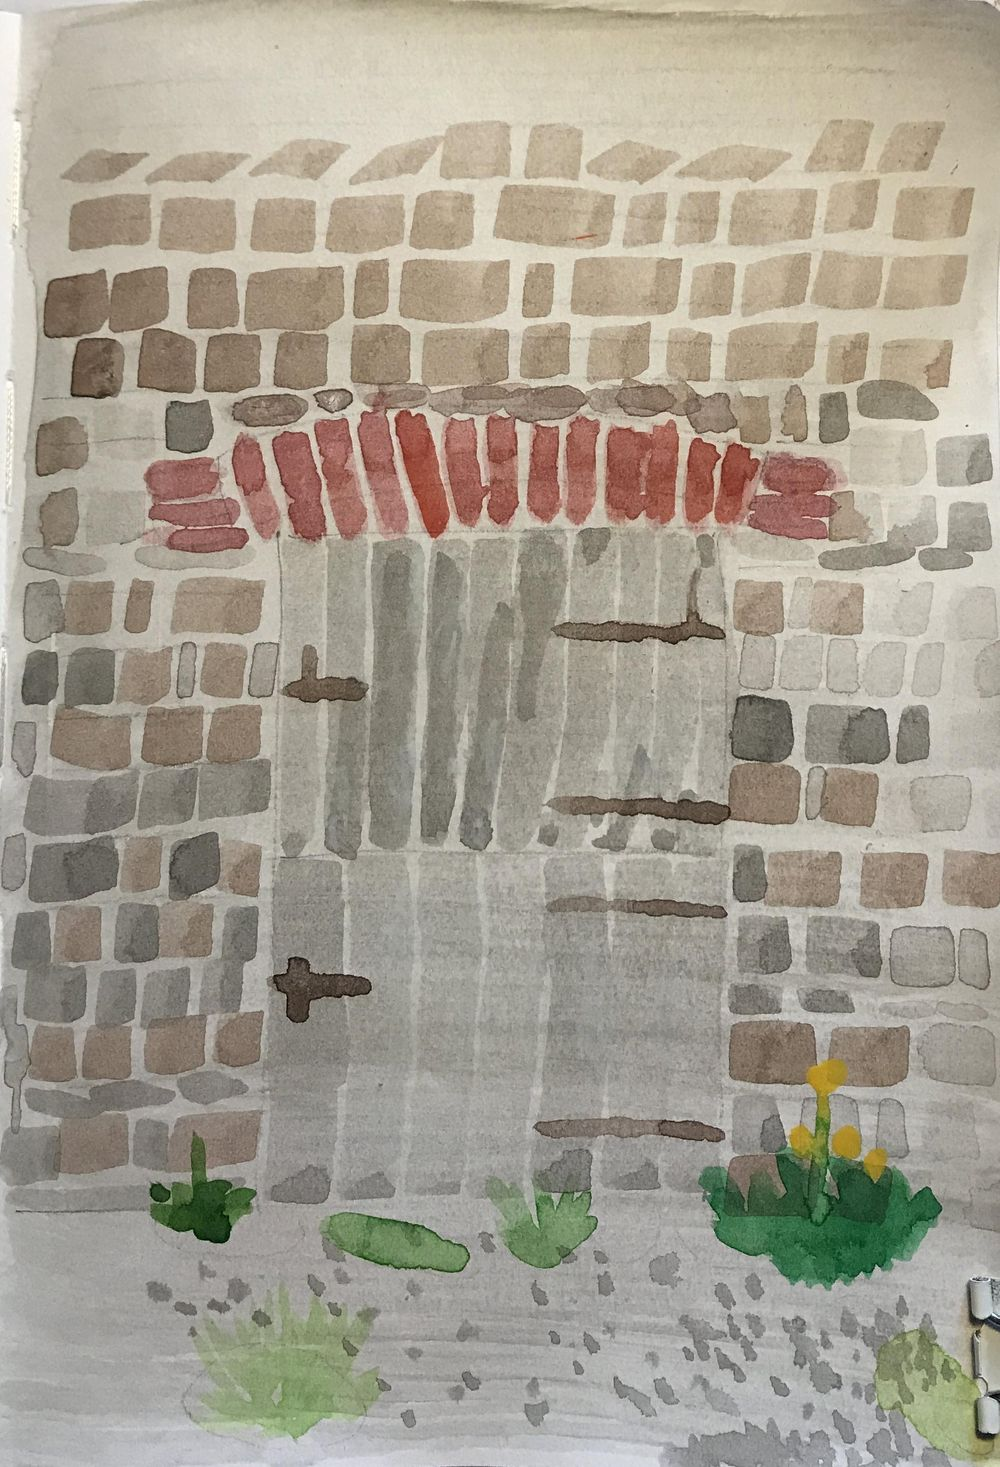 Watercolour Workout 14 days of trills - image 2 - student project